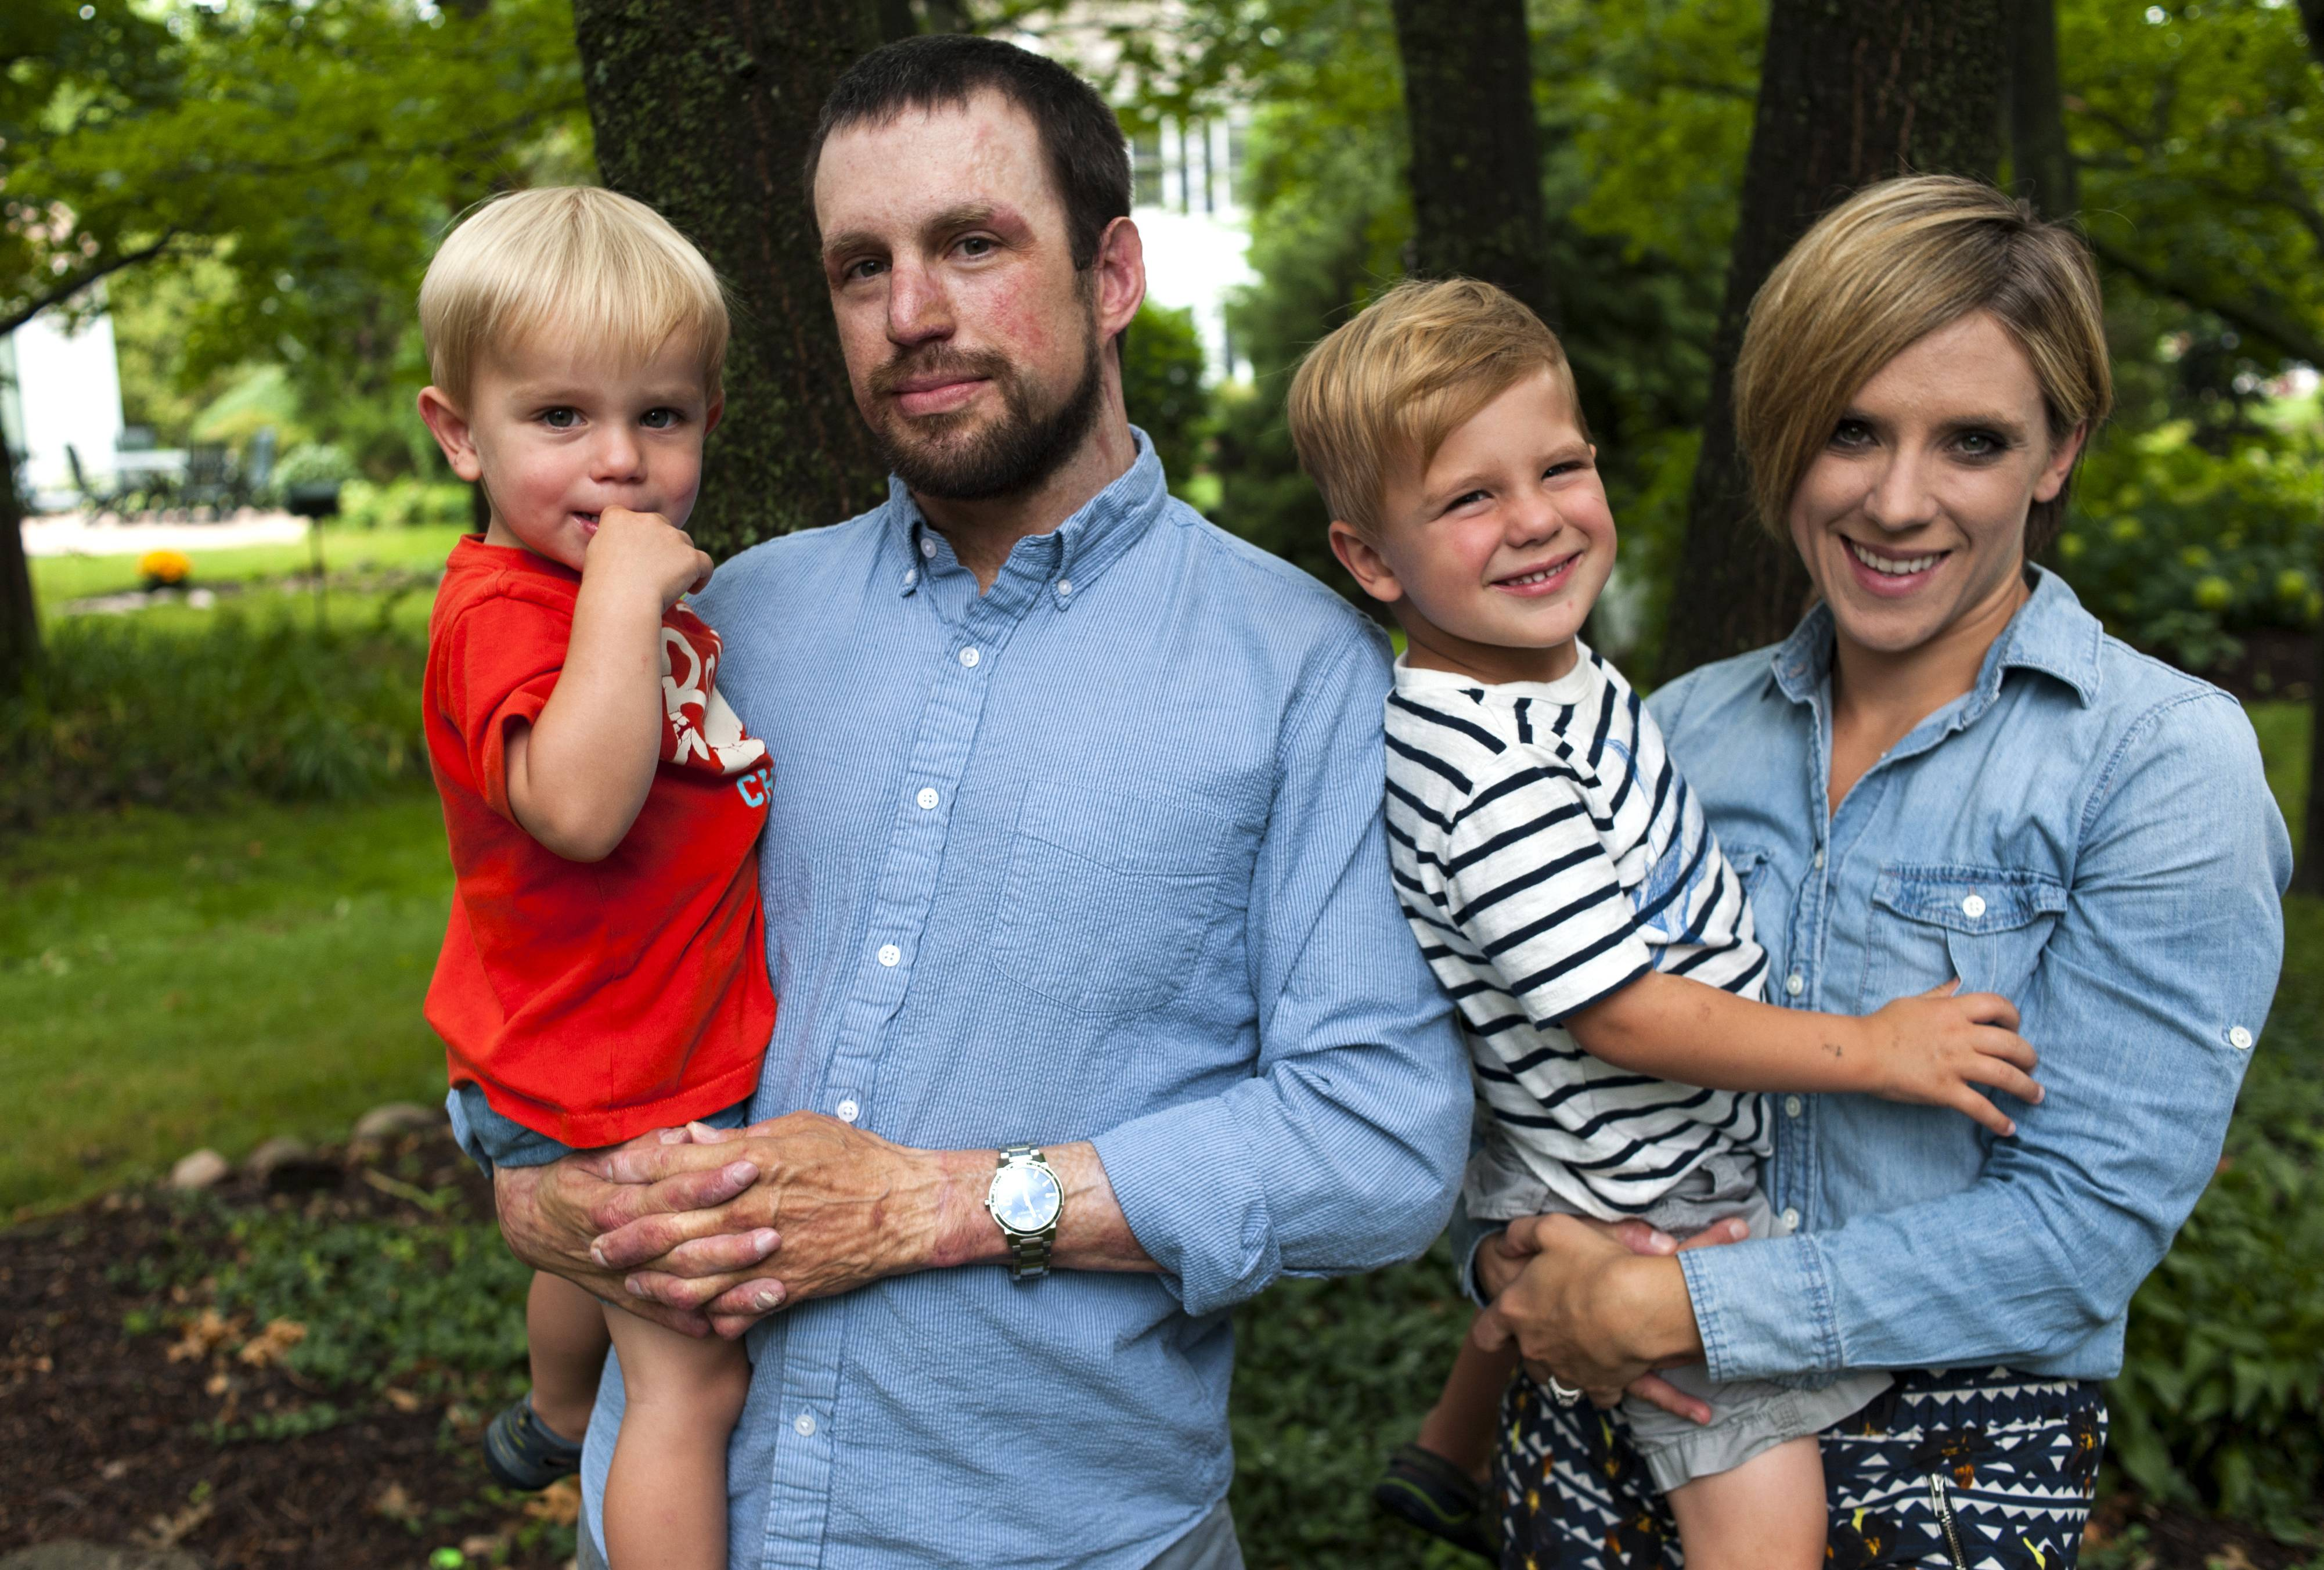 Holding sons Gavin, 2, left, and Brogan, 3, Army veterans Breg and Allison Hughes say they got support from several charities after he was wounded and burned by a roadside bomb while serving in Afghanistan in 2012.